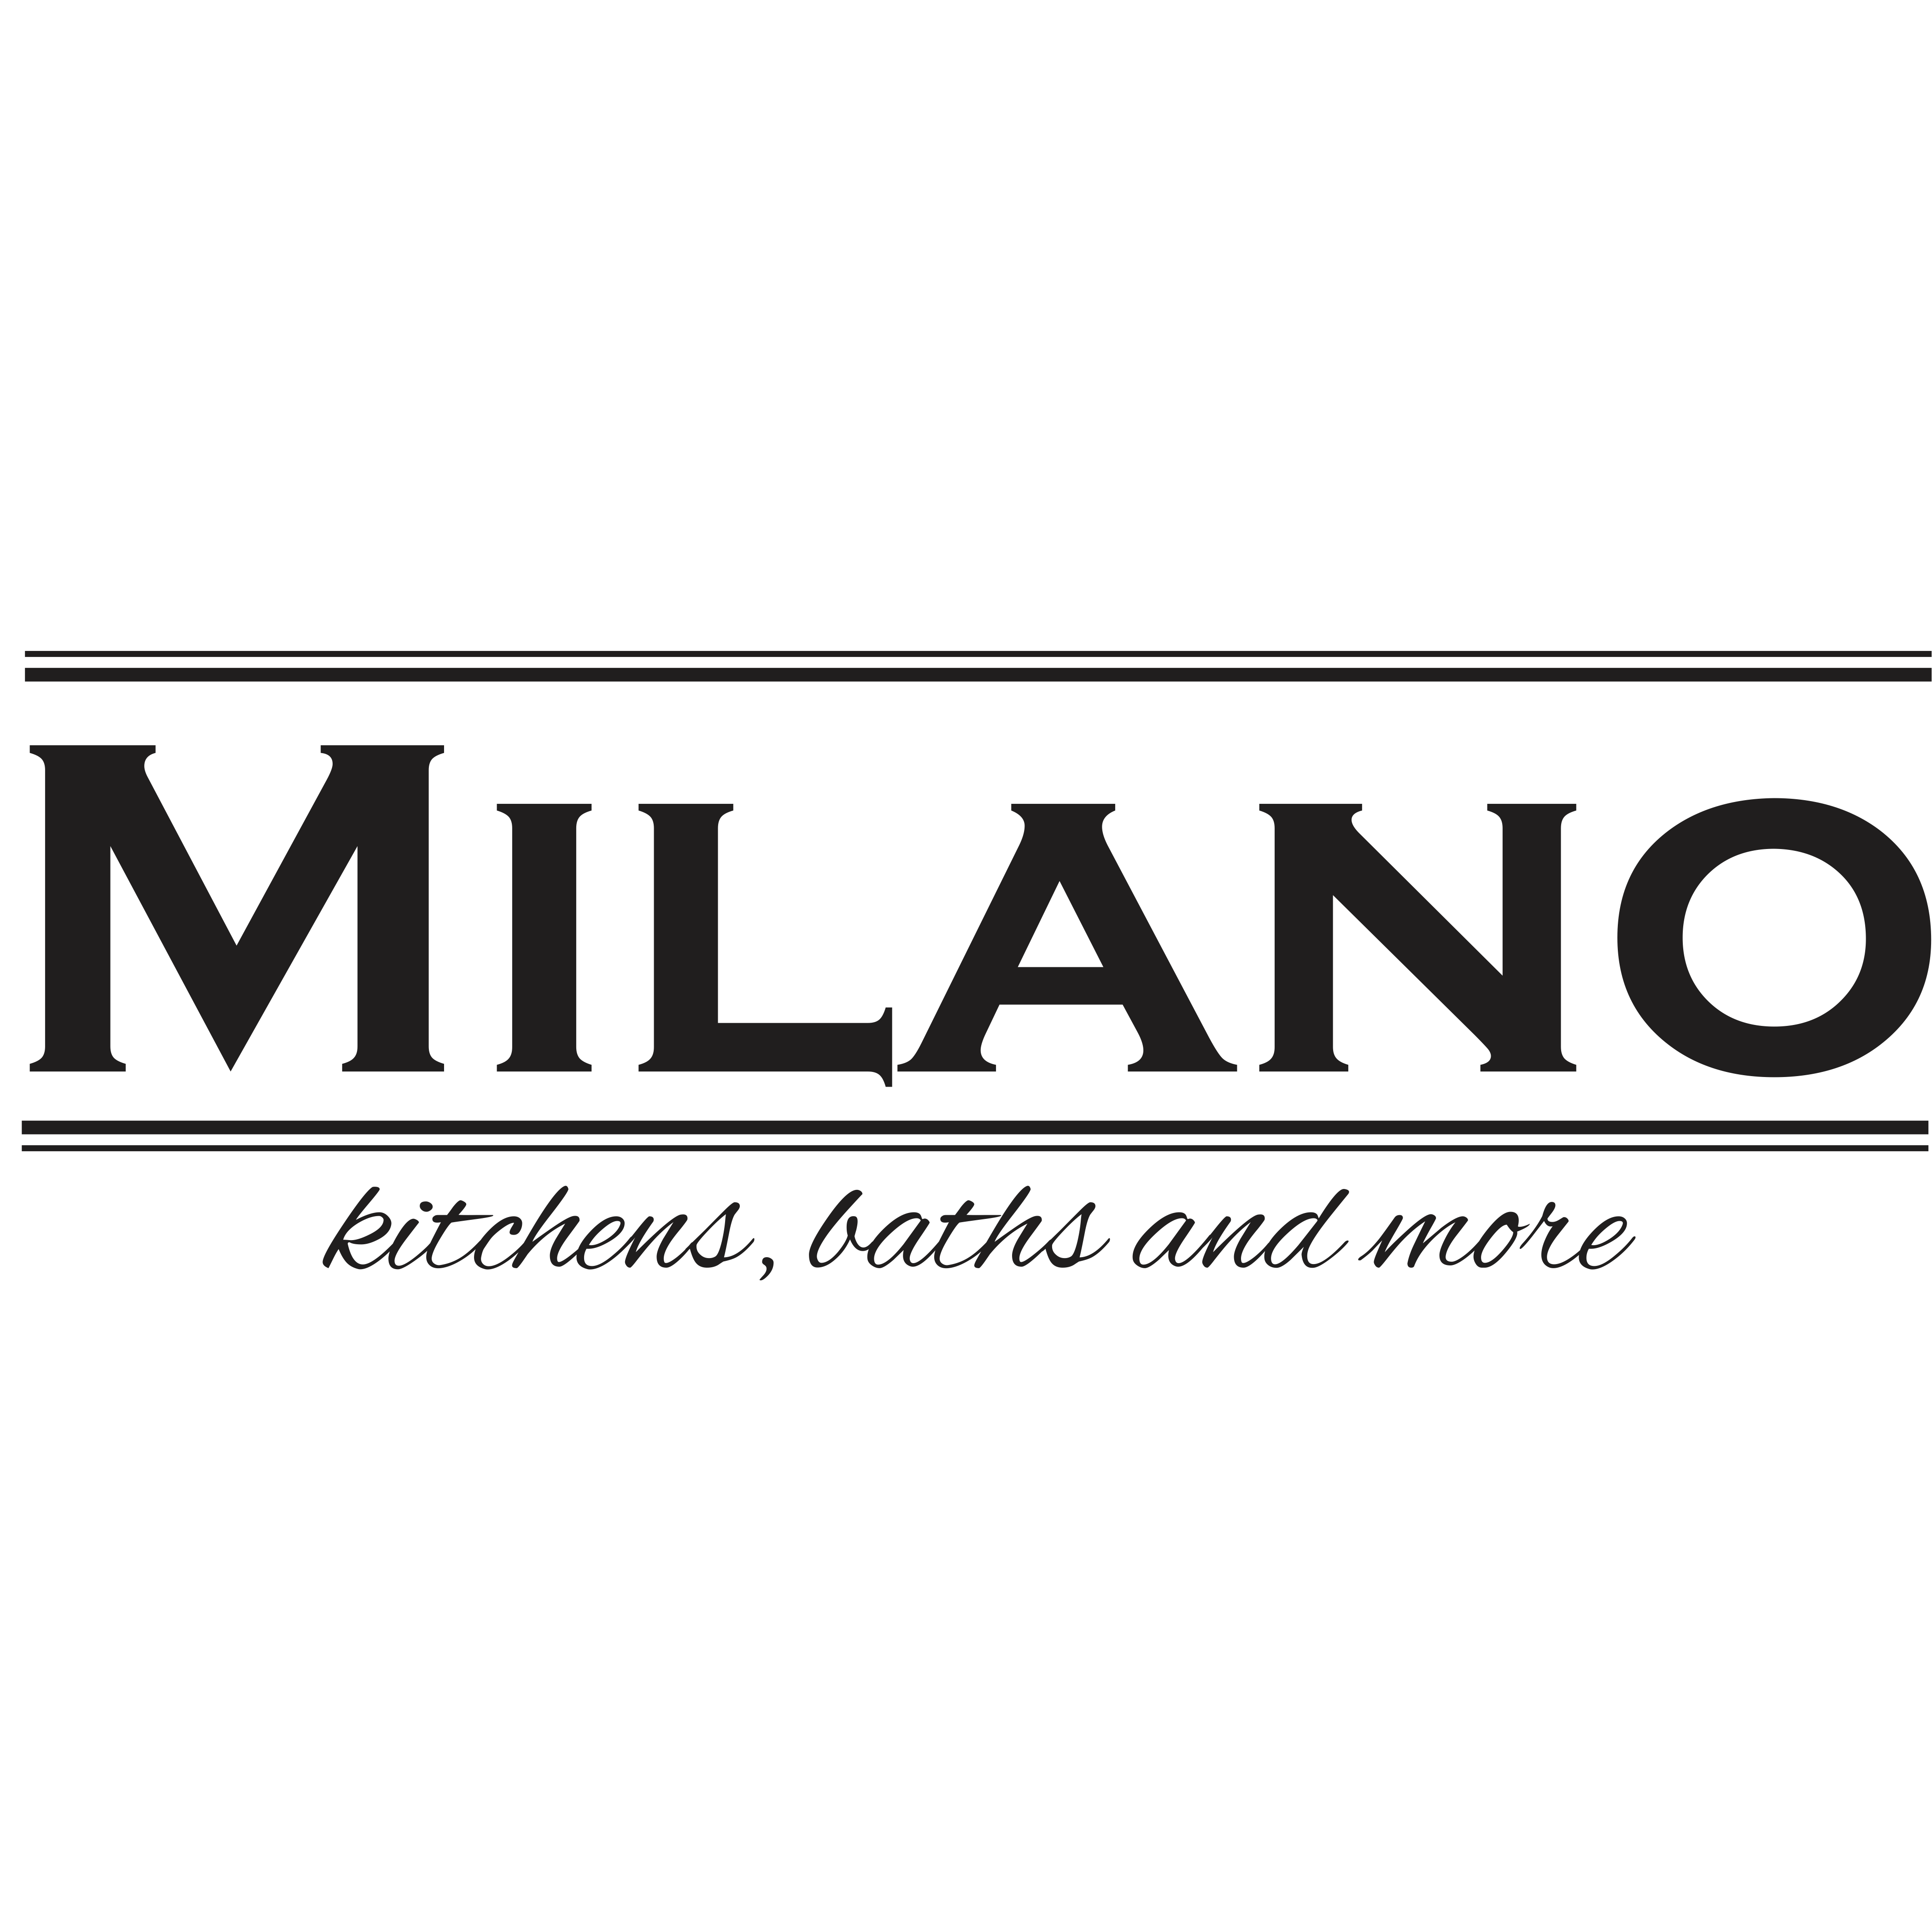 Milano Kitchens, Baths and More